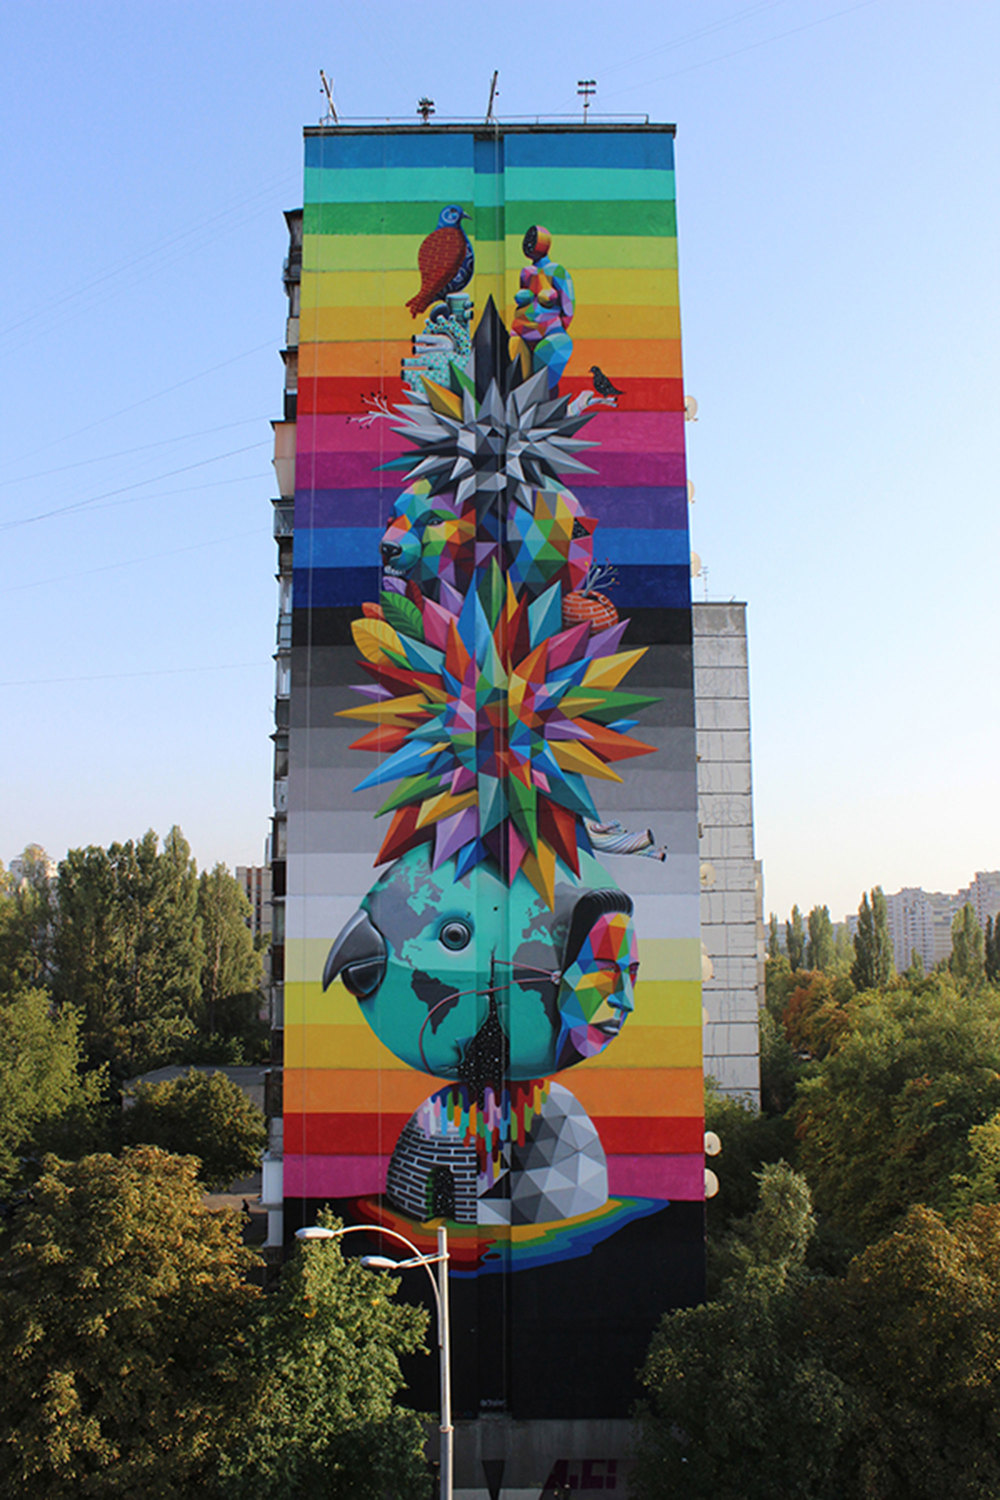 OKUDA: IN THE STREETS